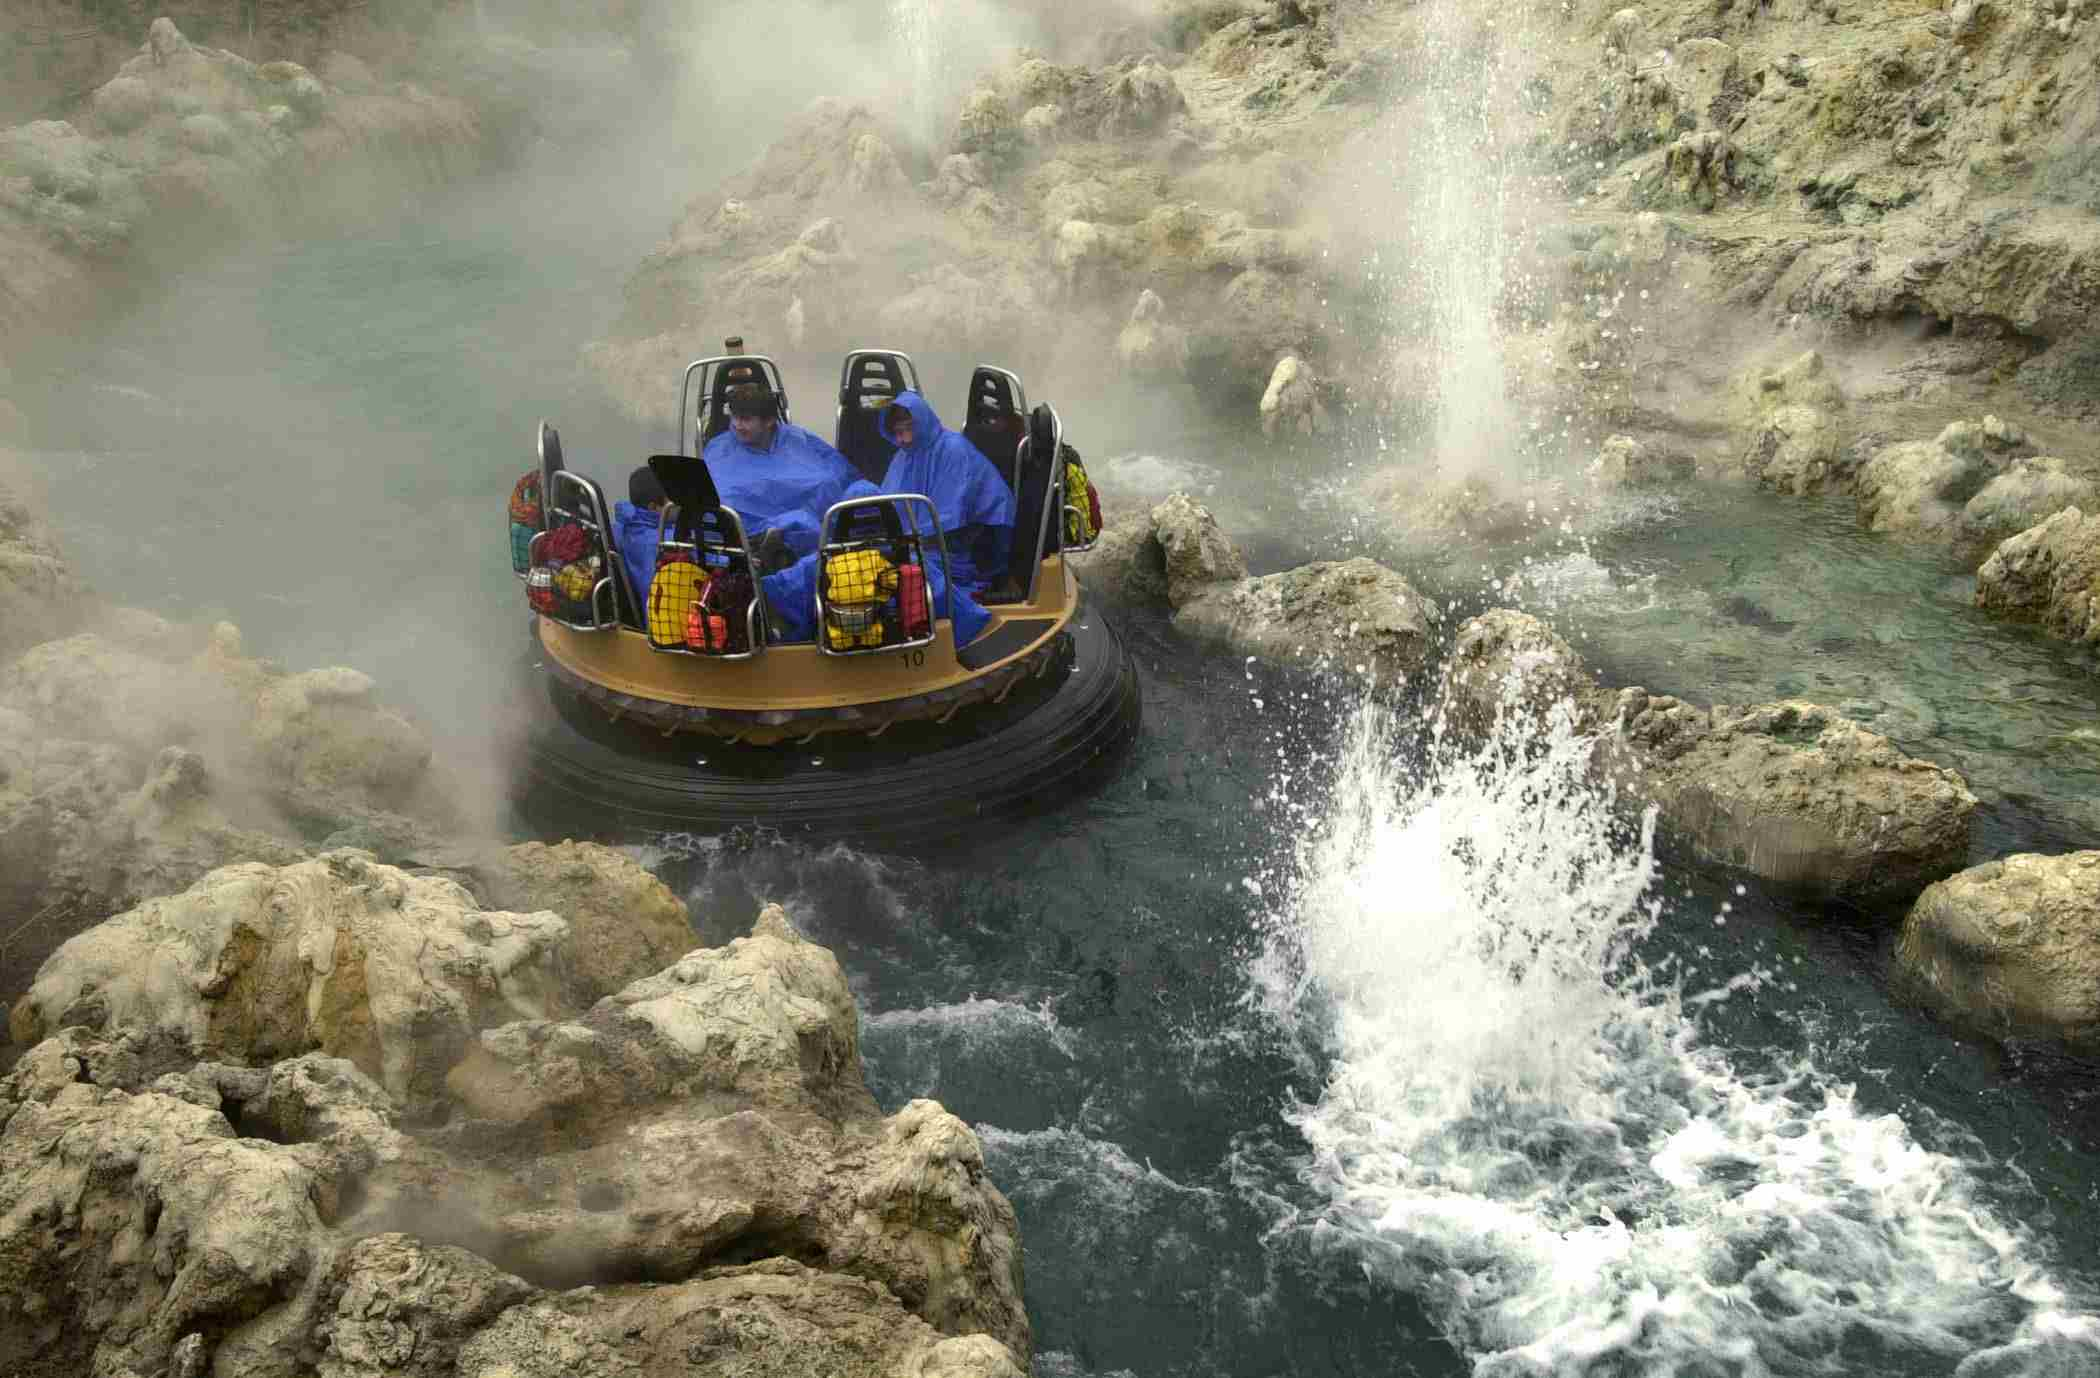 Riders on Grizzly River Run